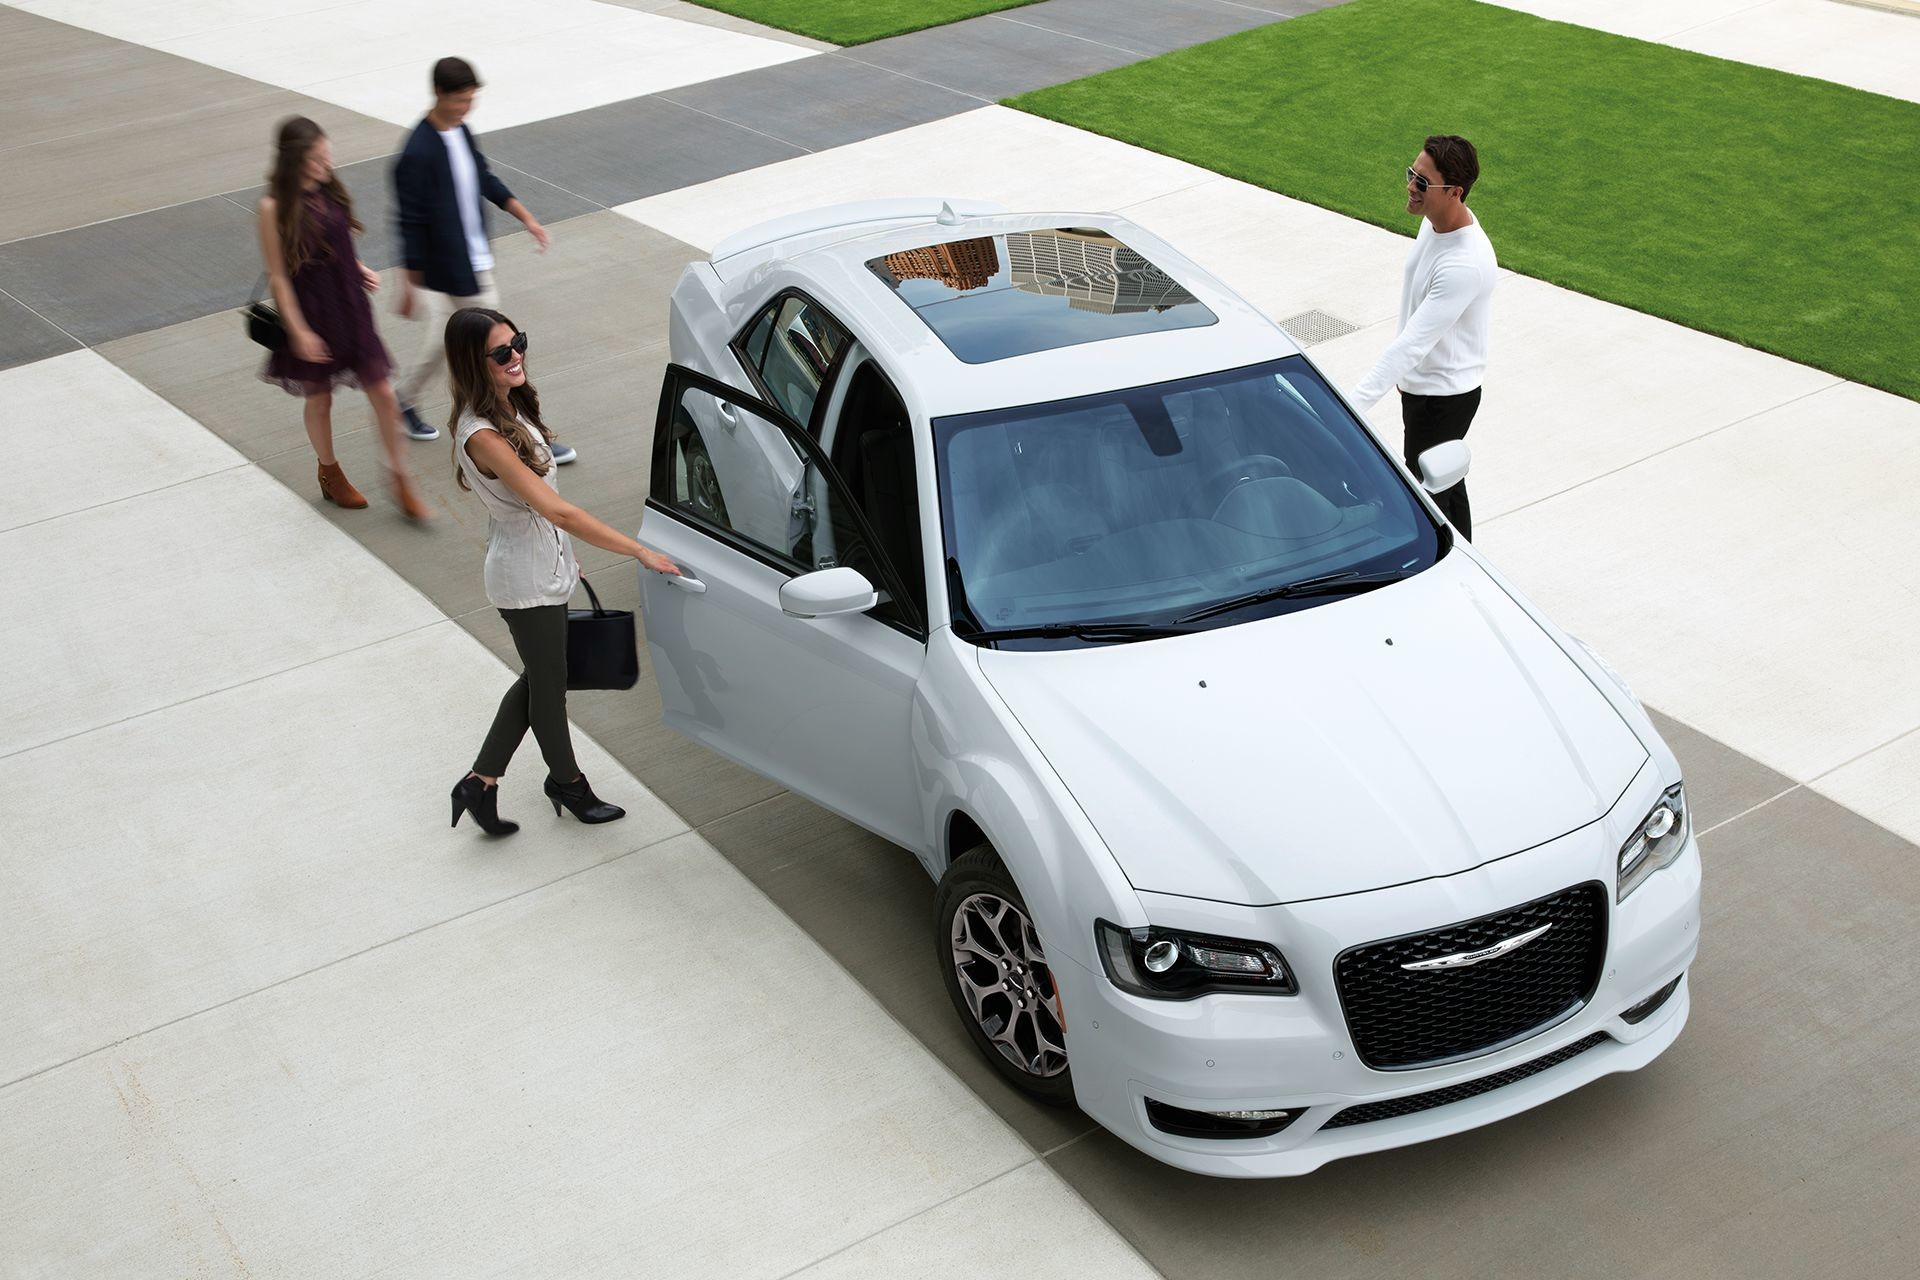 2019 Chrysler 300 aerial view in white with sunroof